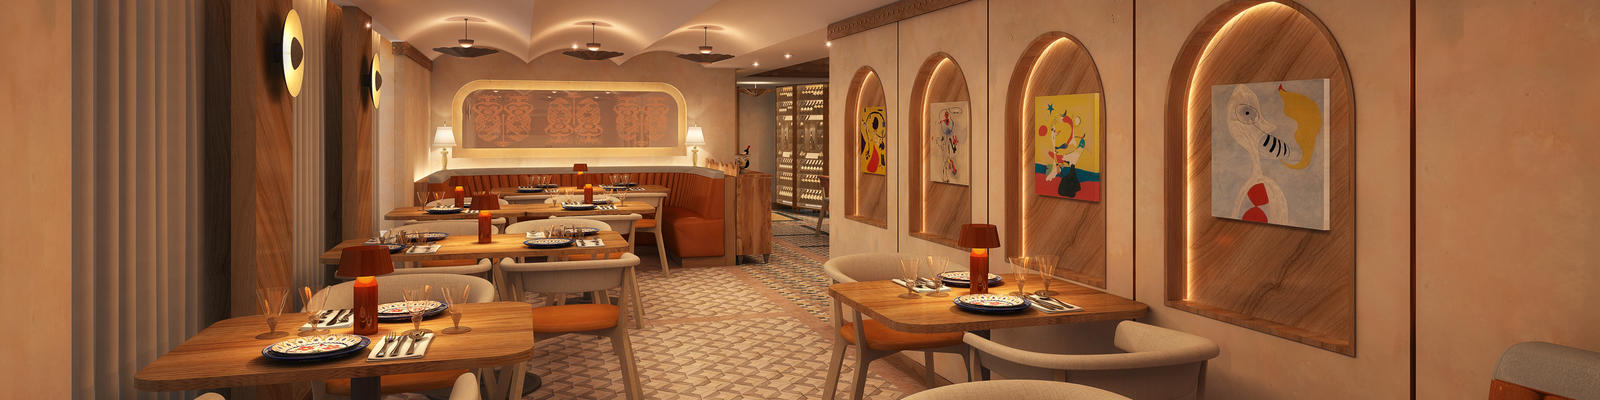 Rendering of Cuadro 44 interior design